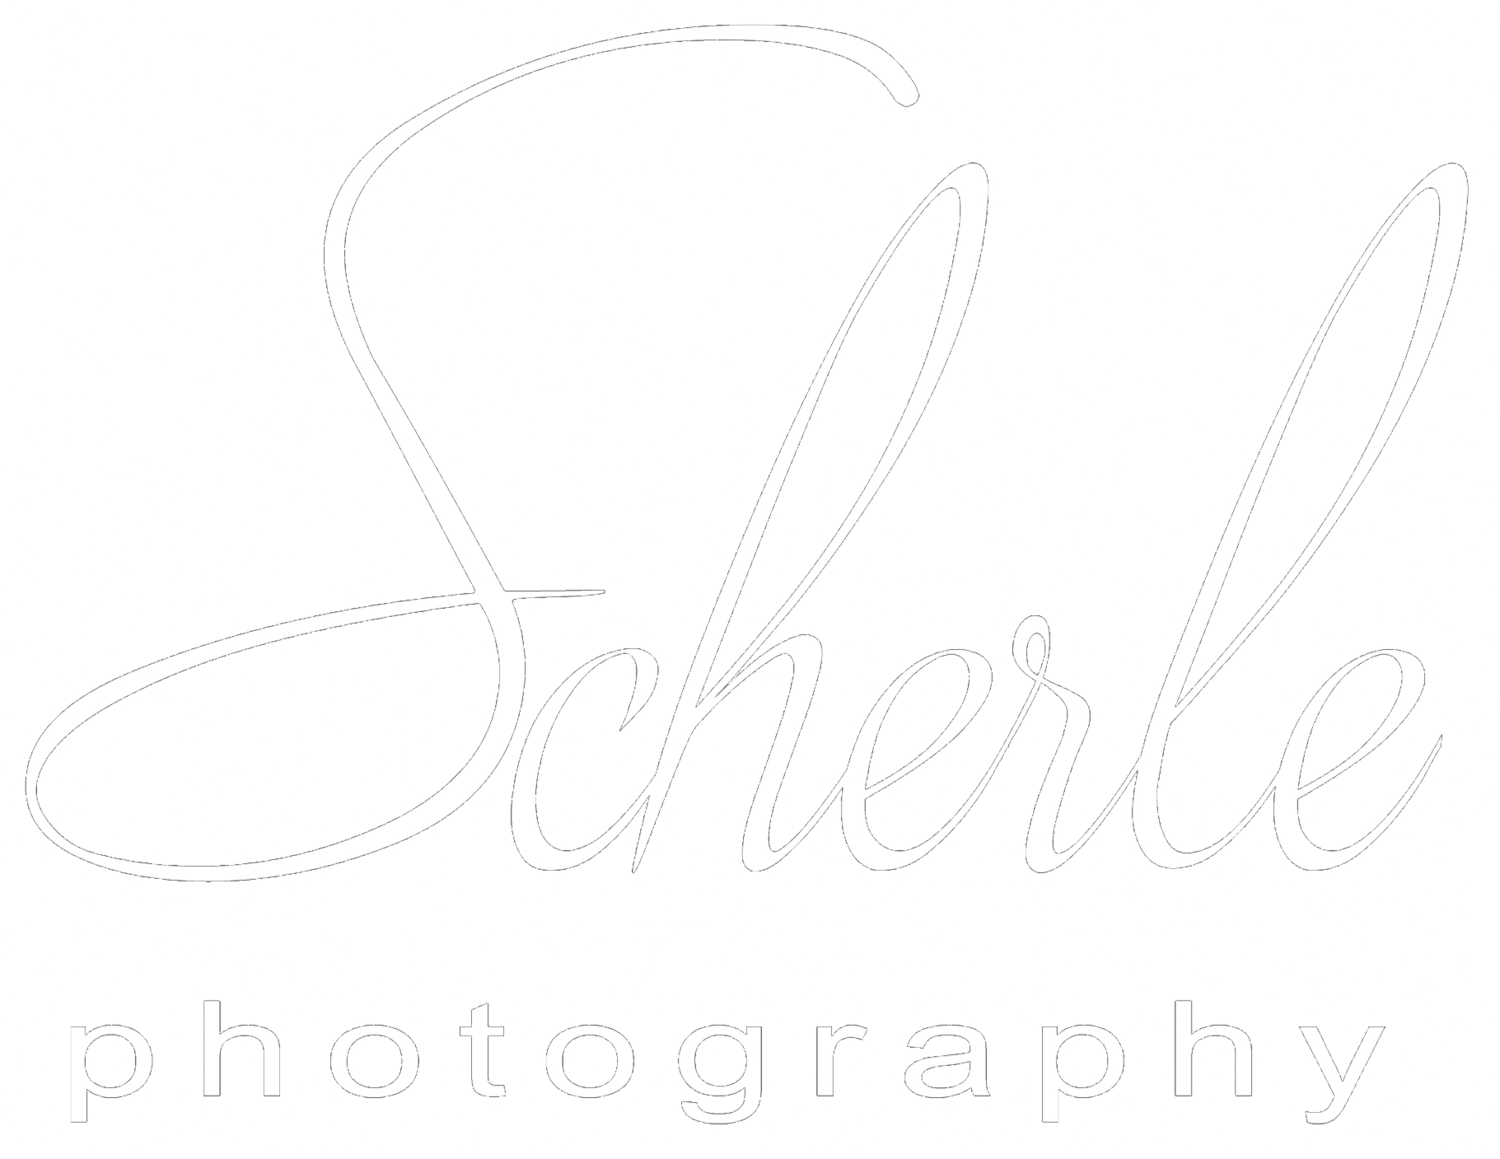 London Ontario Wedding Photographer - London Ontario Wedding Photography - Scherle Photography